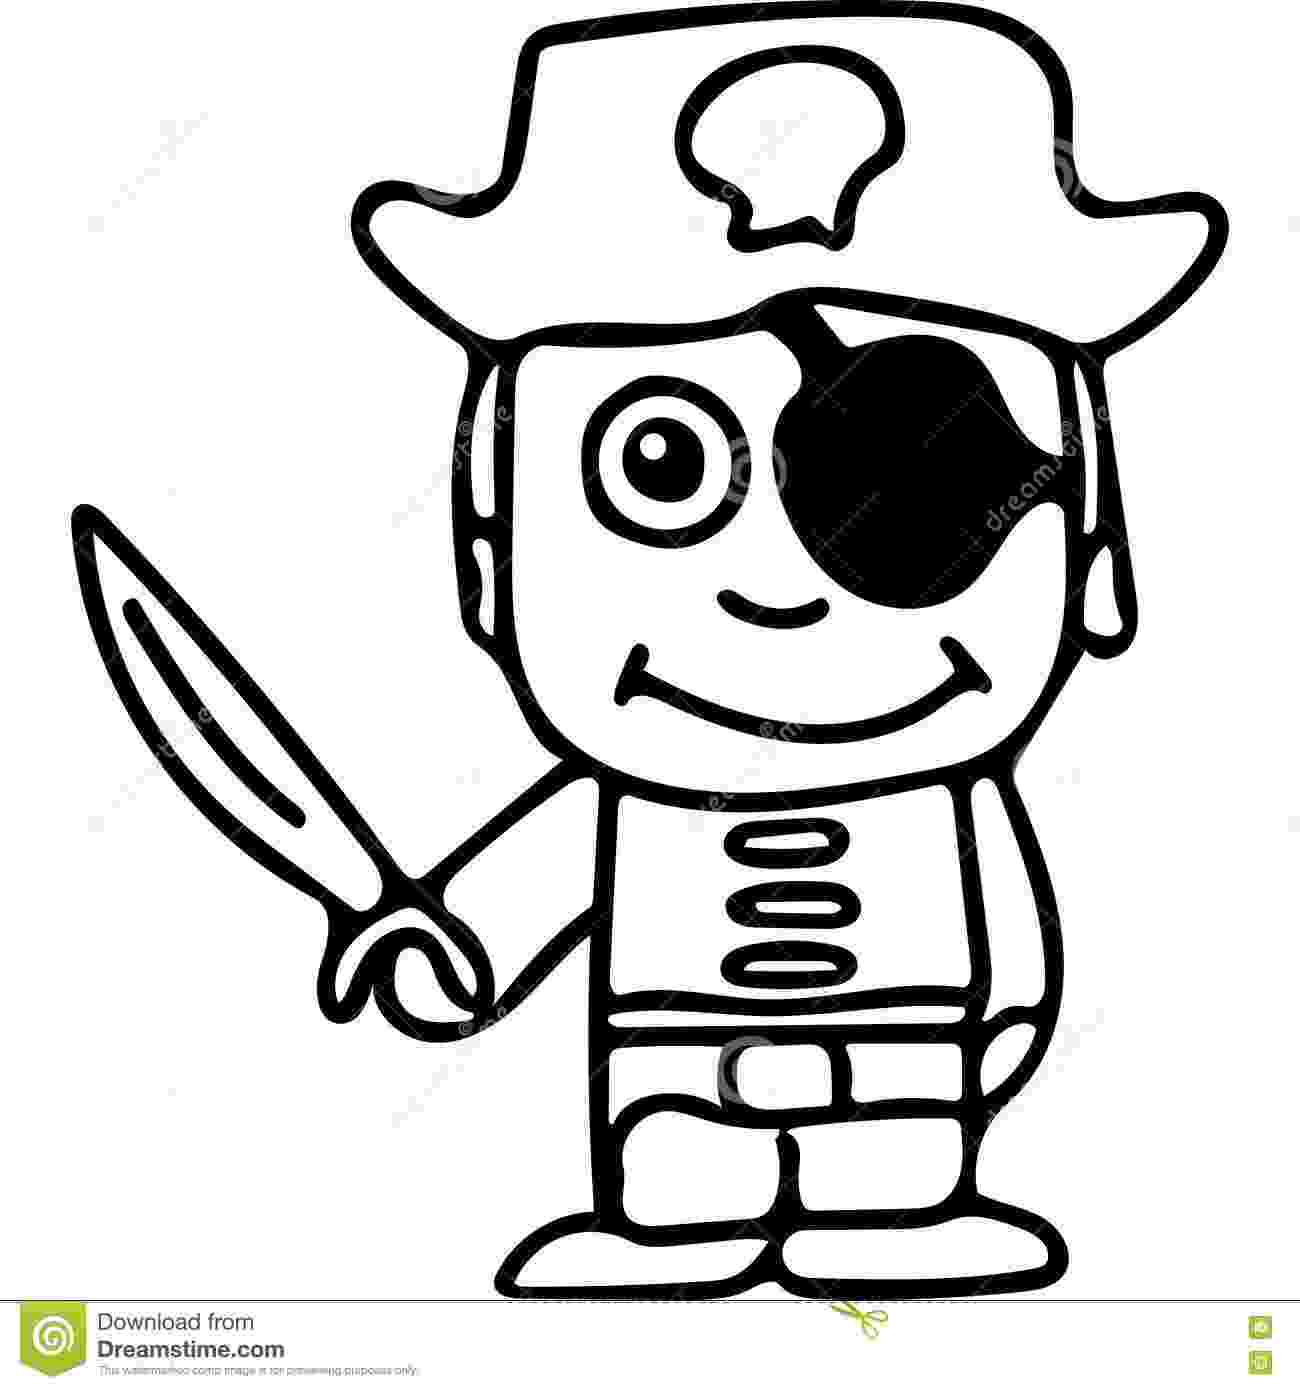 pirate coloring pages for kids wonderful pirate clip art and coloring pages for kids pages coloring kids pirate for